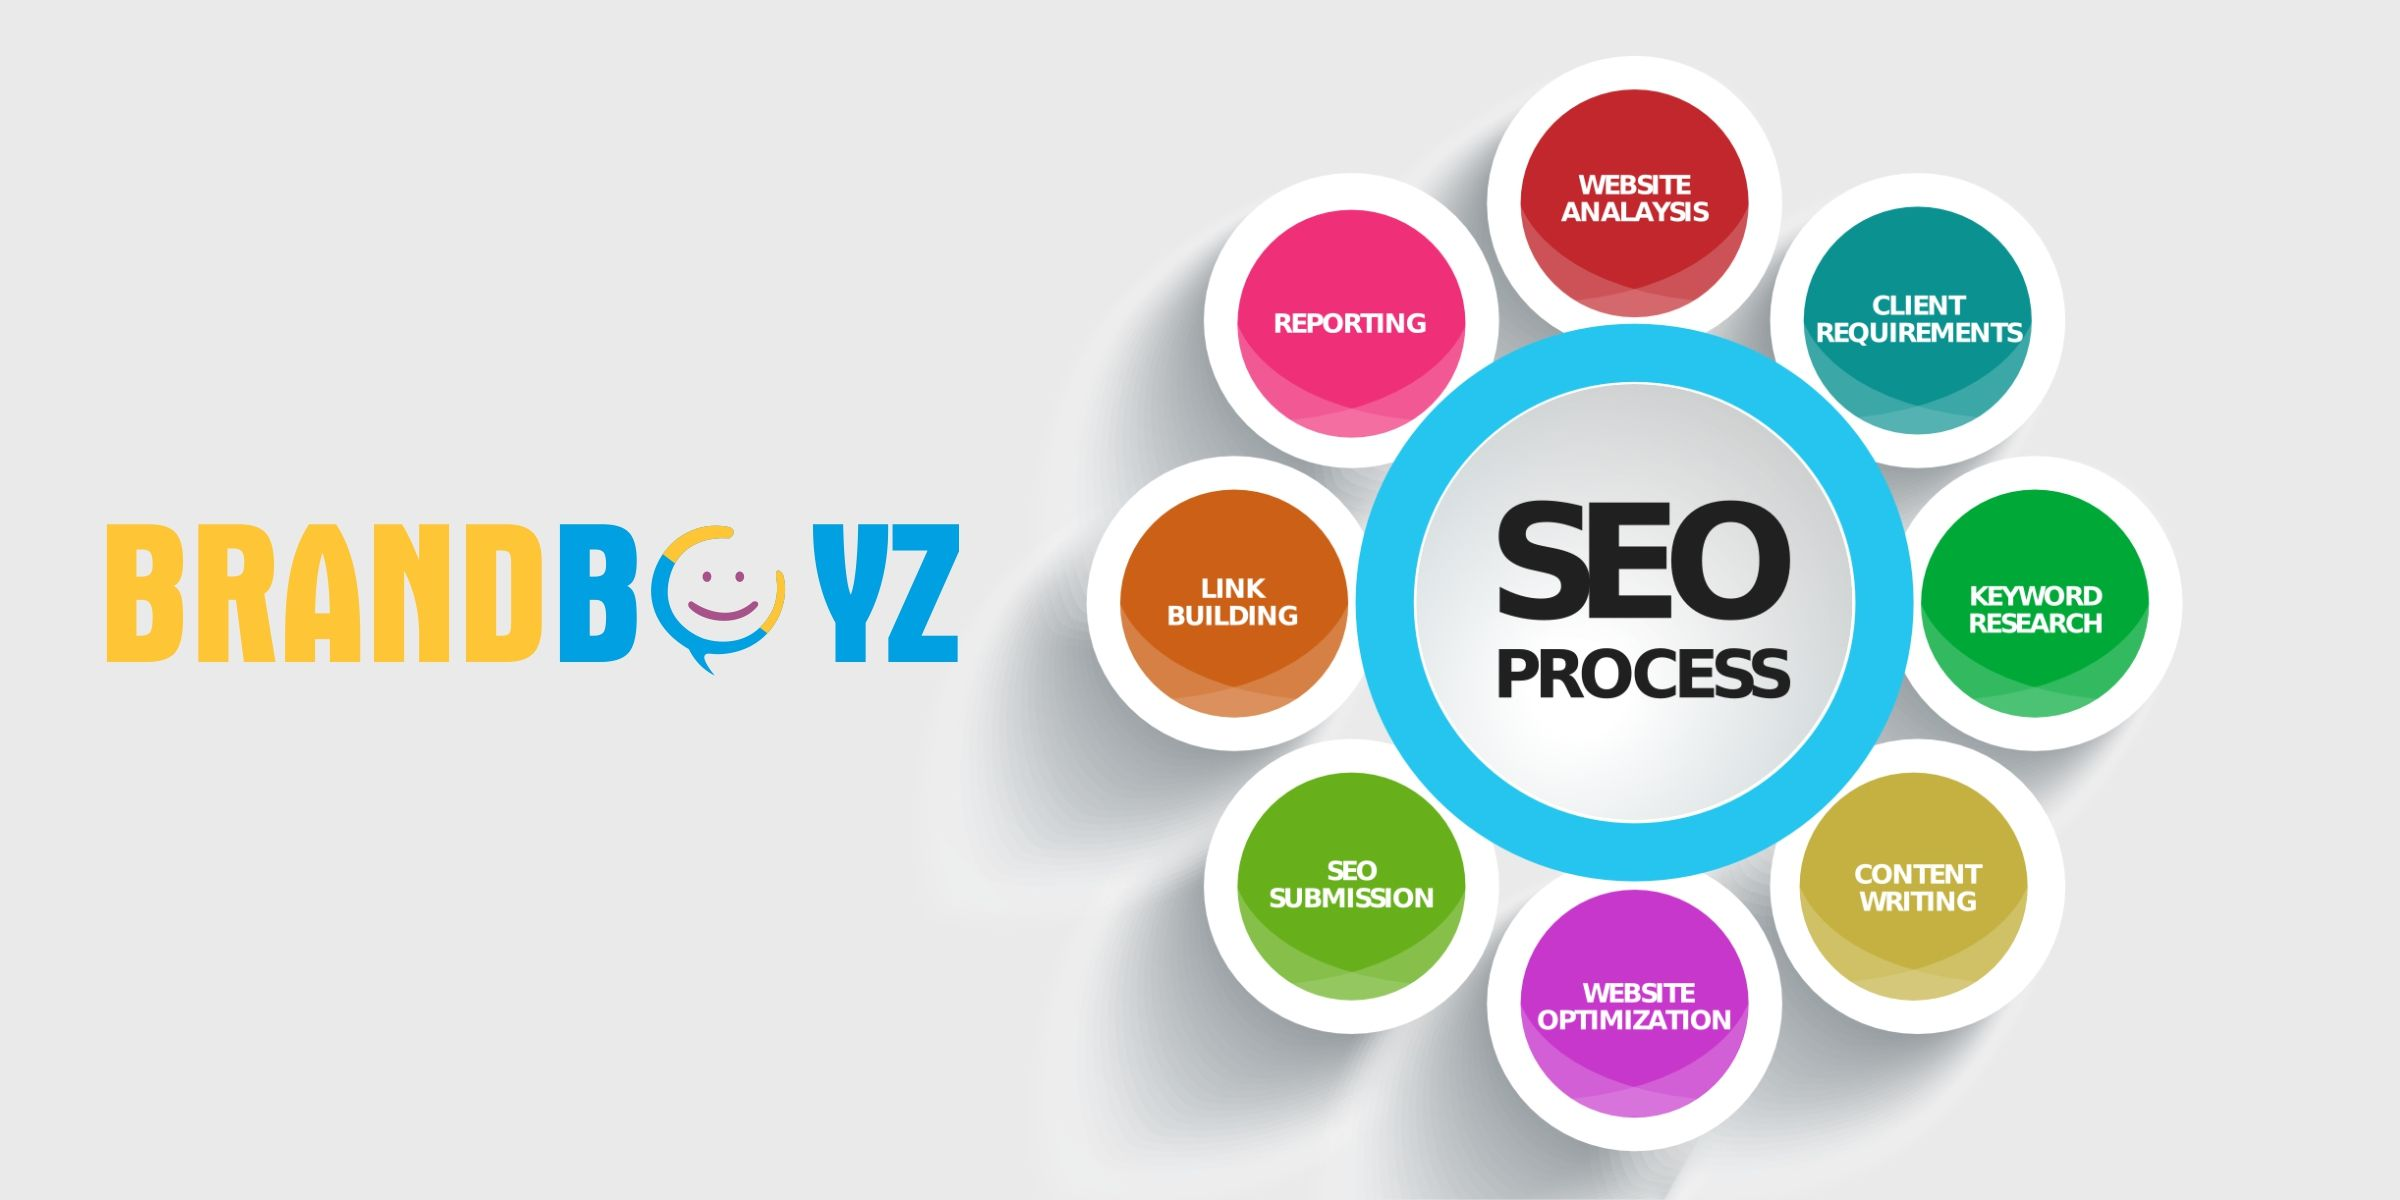 By applying proven strategies and techniques in social media, it is possible to generate significant ranking and achieve meaningful, specific commercial objectives. For More : http://brandboyz.com/